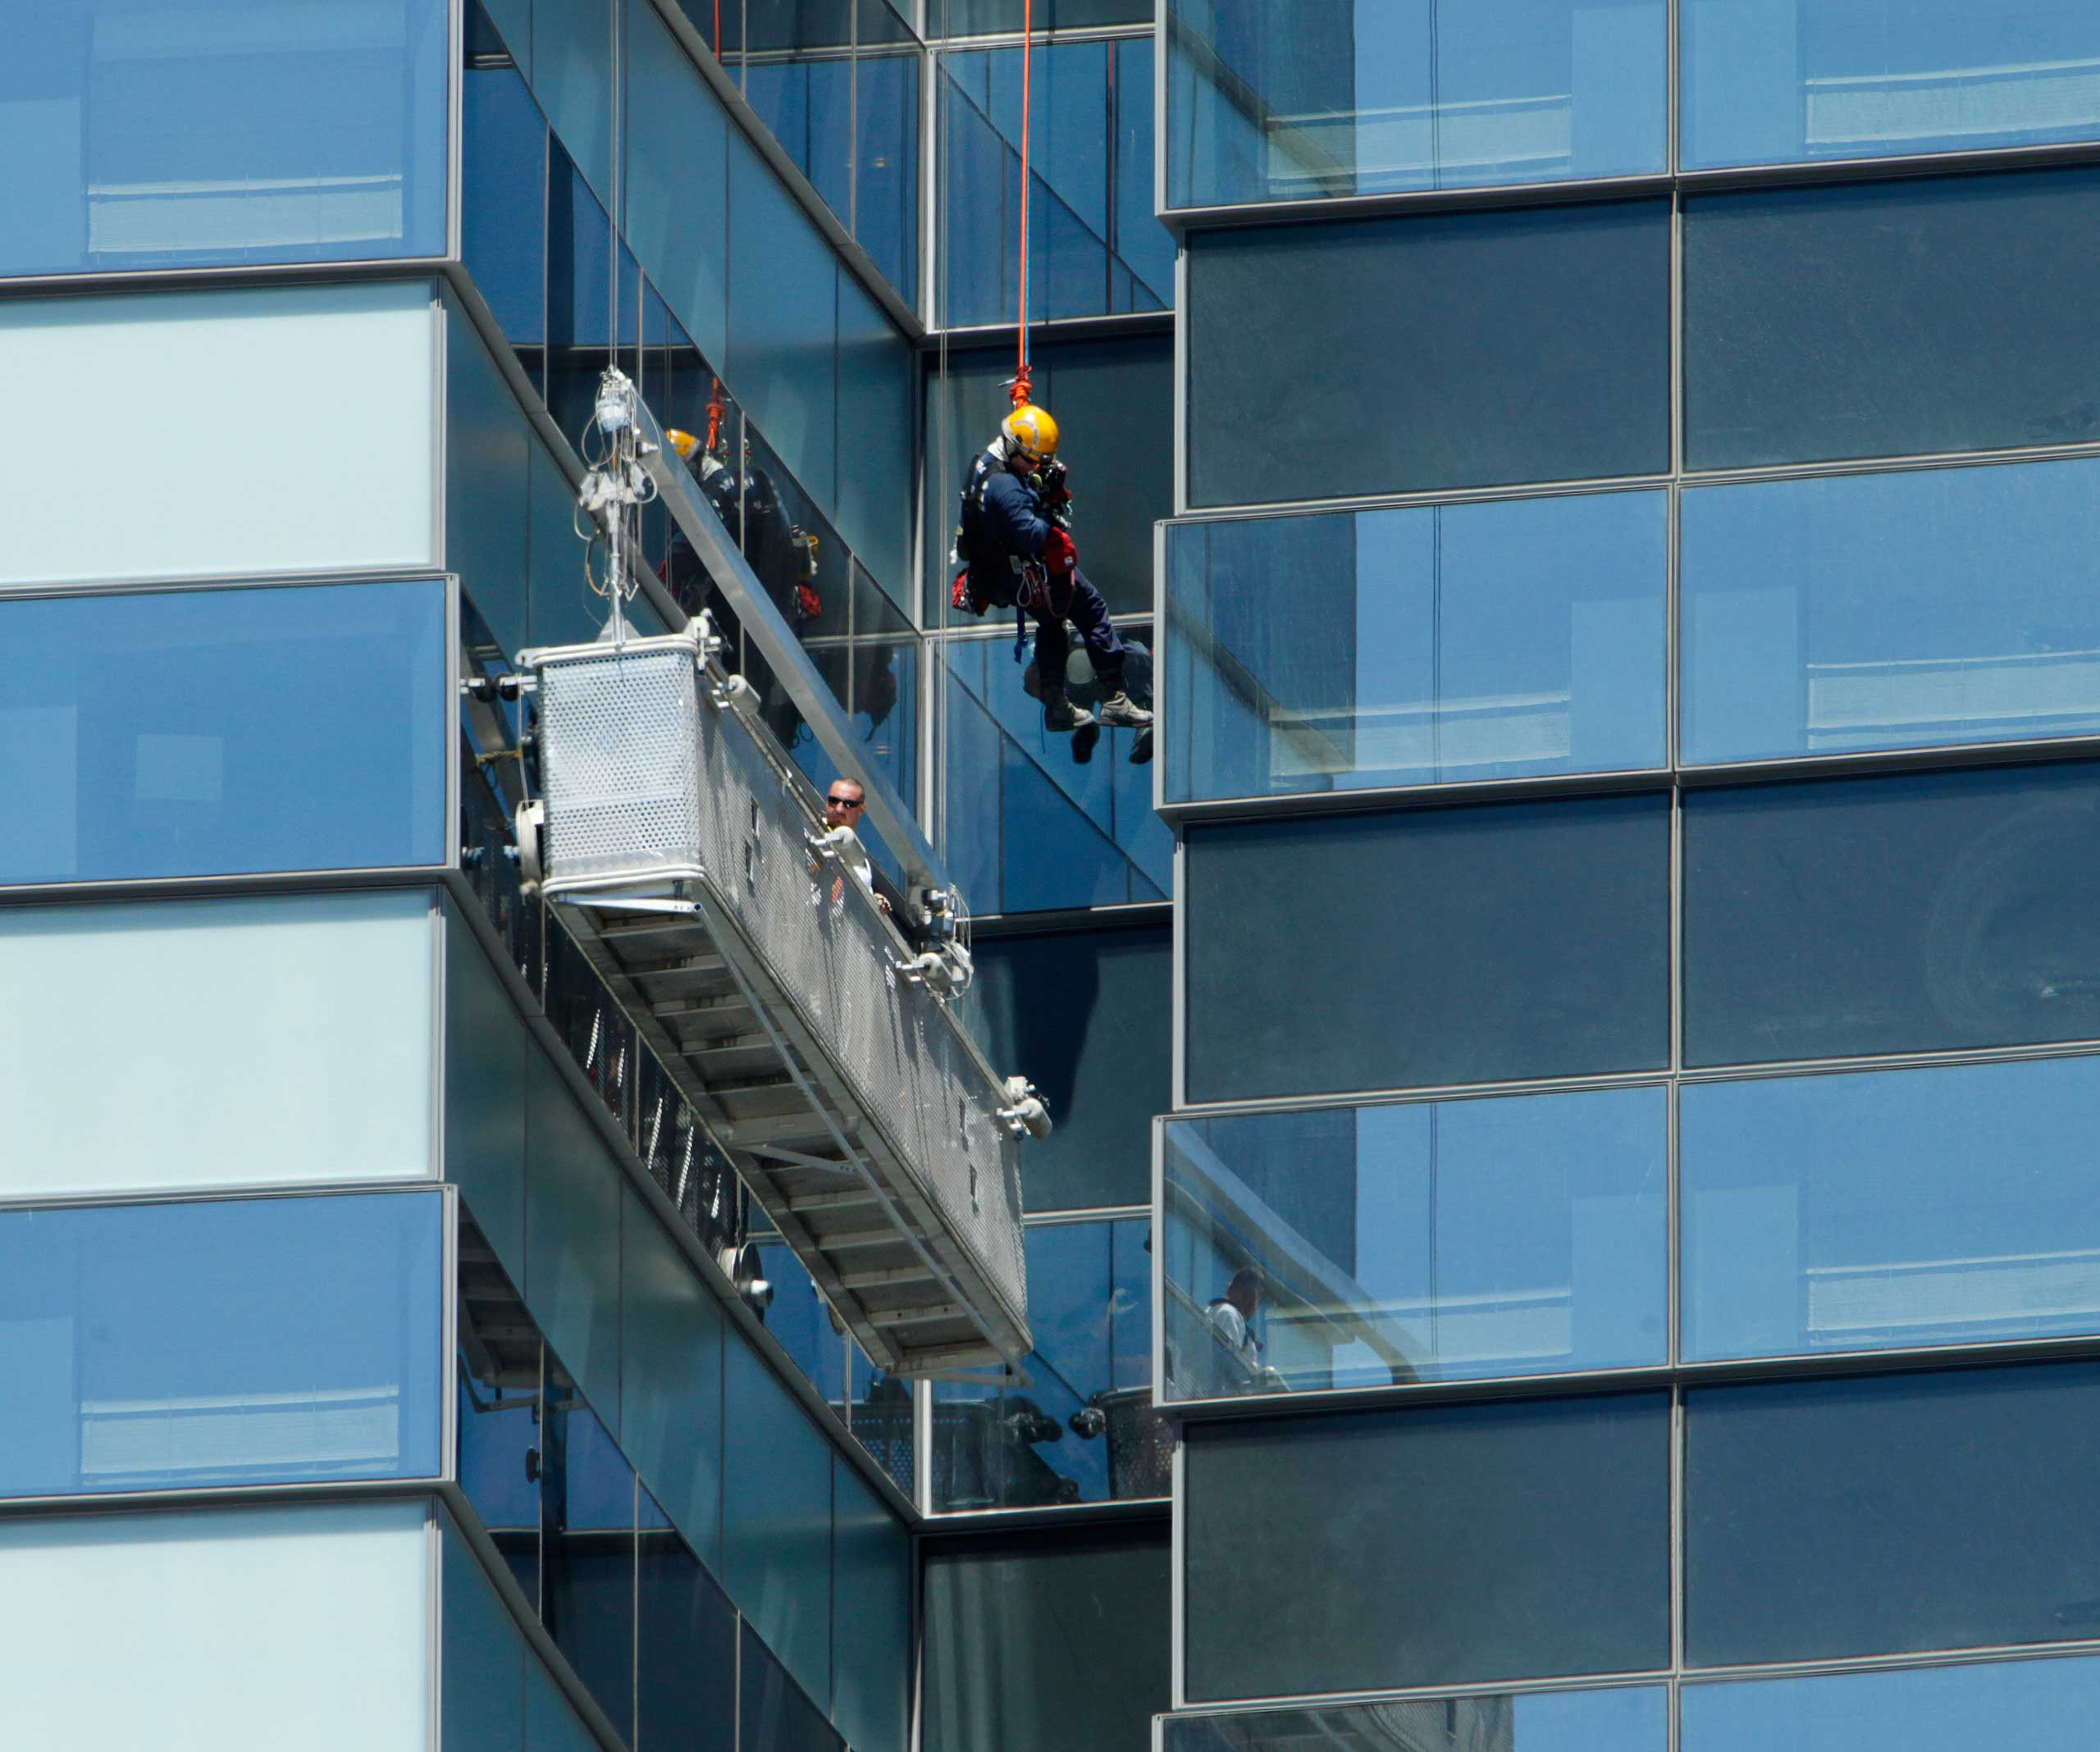 A Las Vegas Fire Department high-angle rescue worker works to rescue window washers stranded outside the 35th floor of the Vdara Hotel in Las Vegas in 2012.